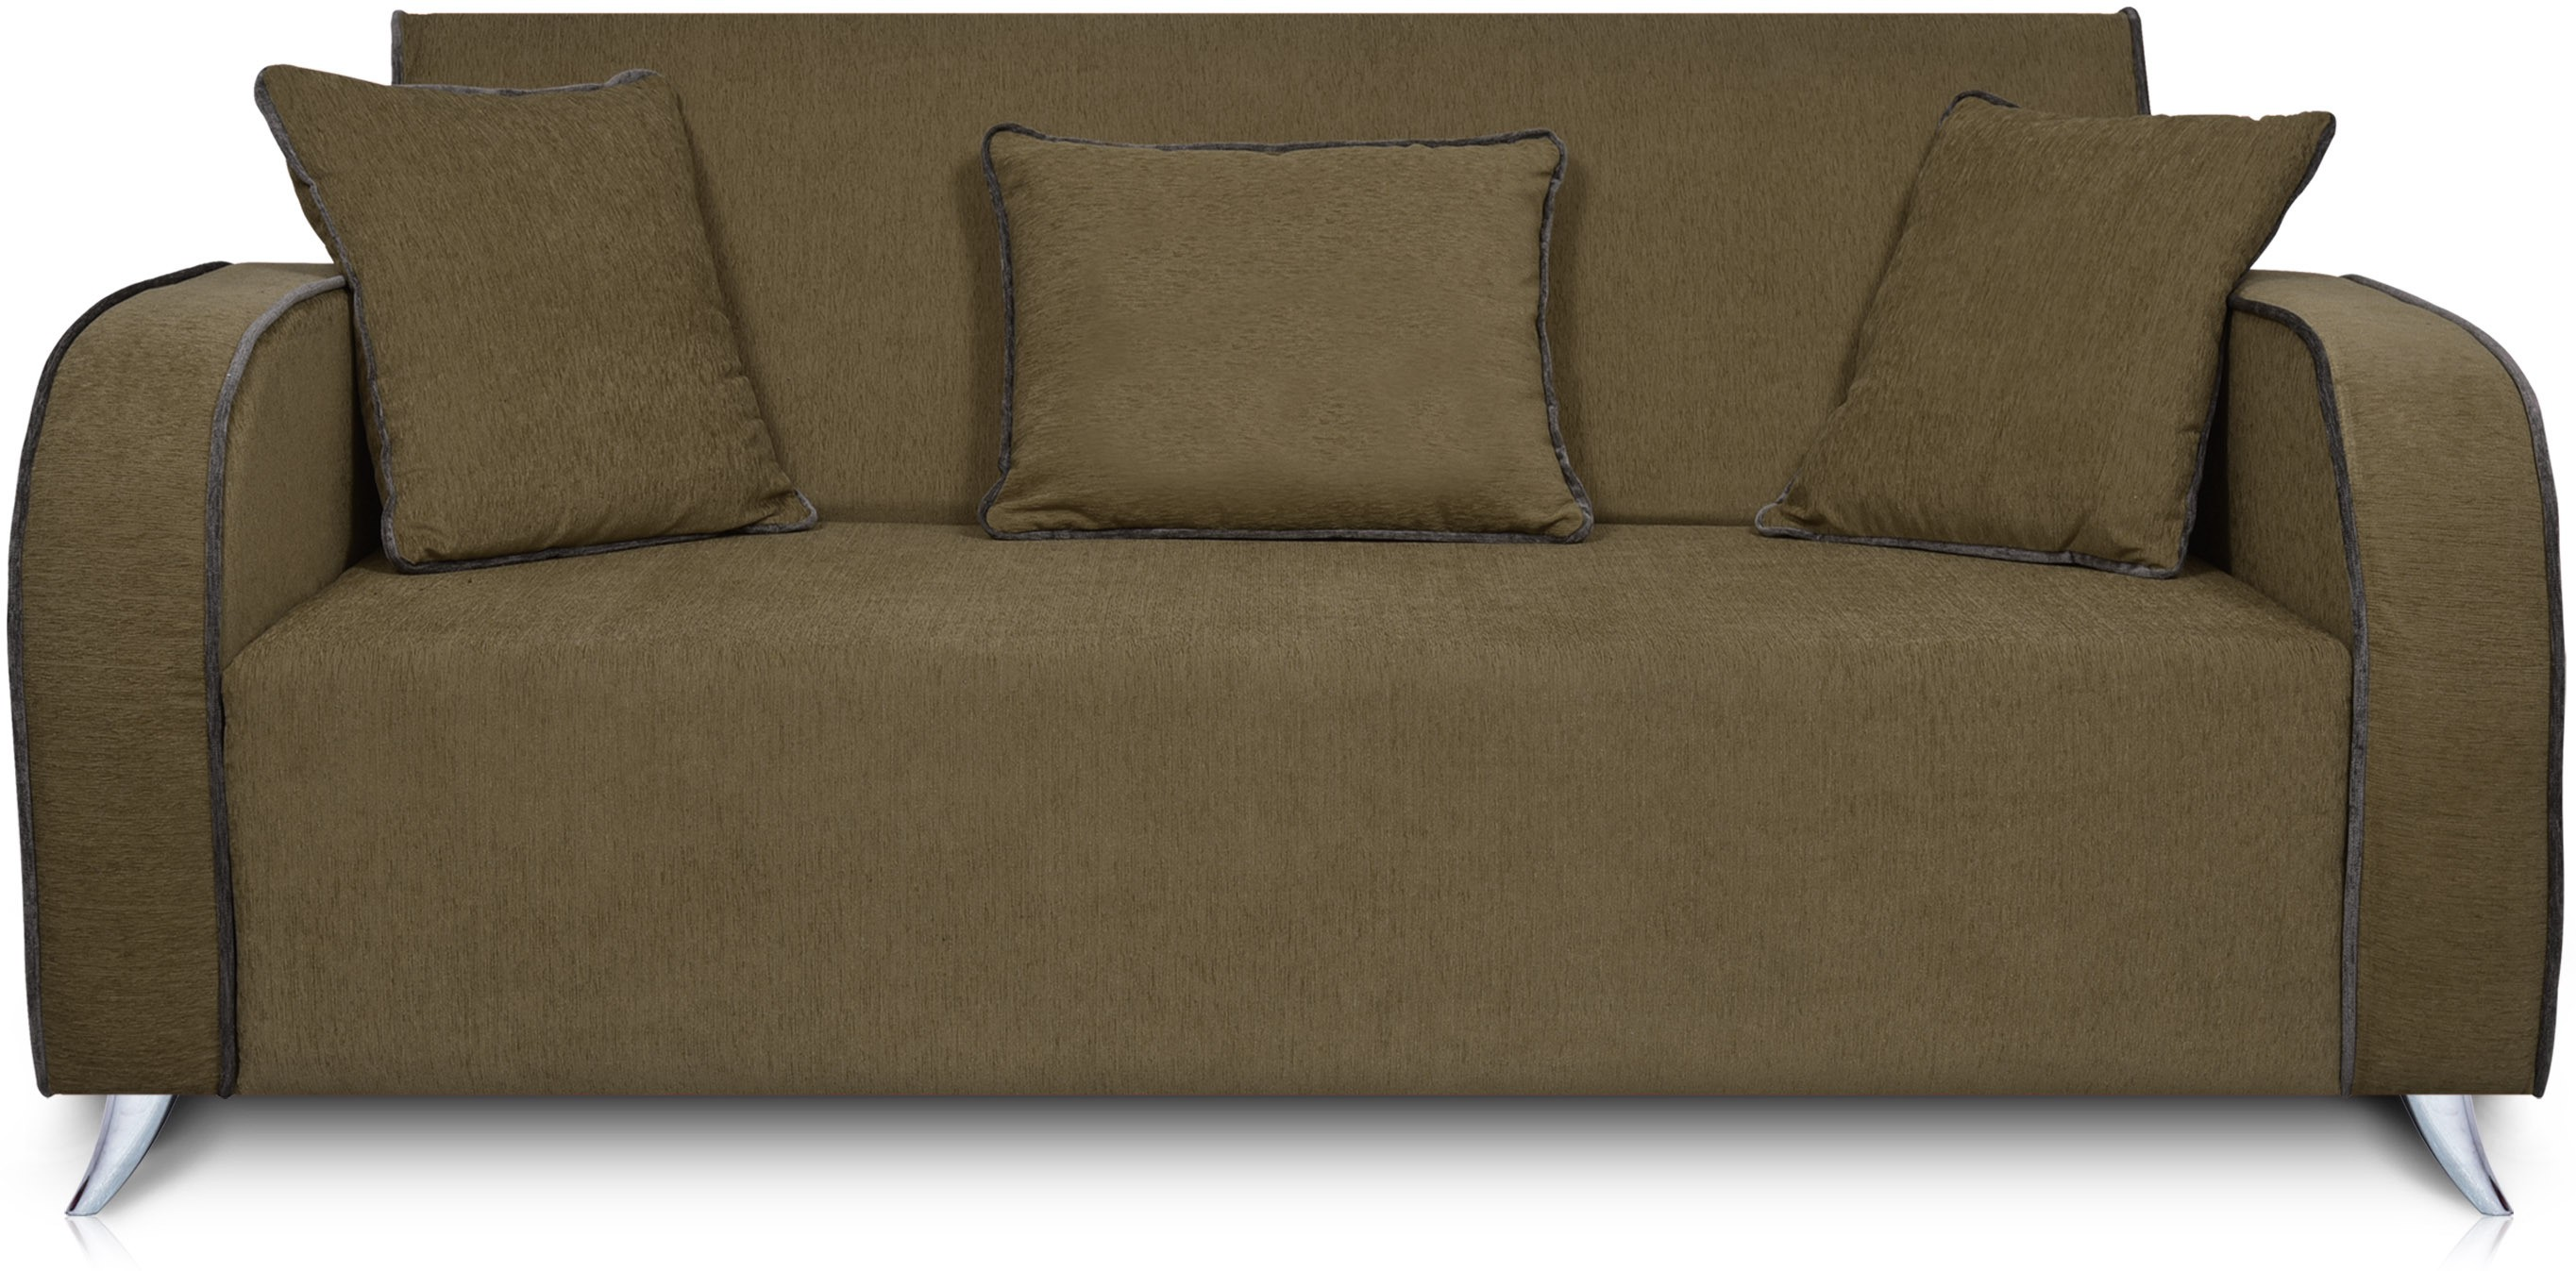 Dolphin Cabana Solid Wood 2 Seater Sectional